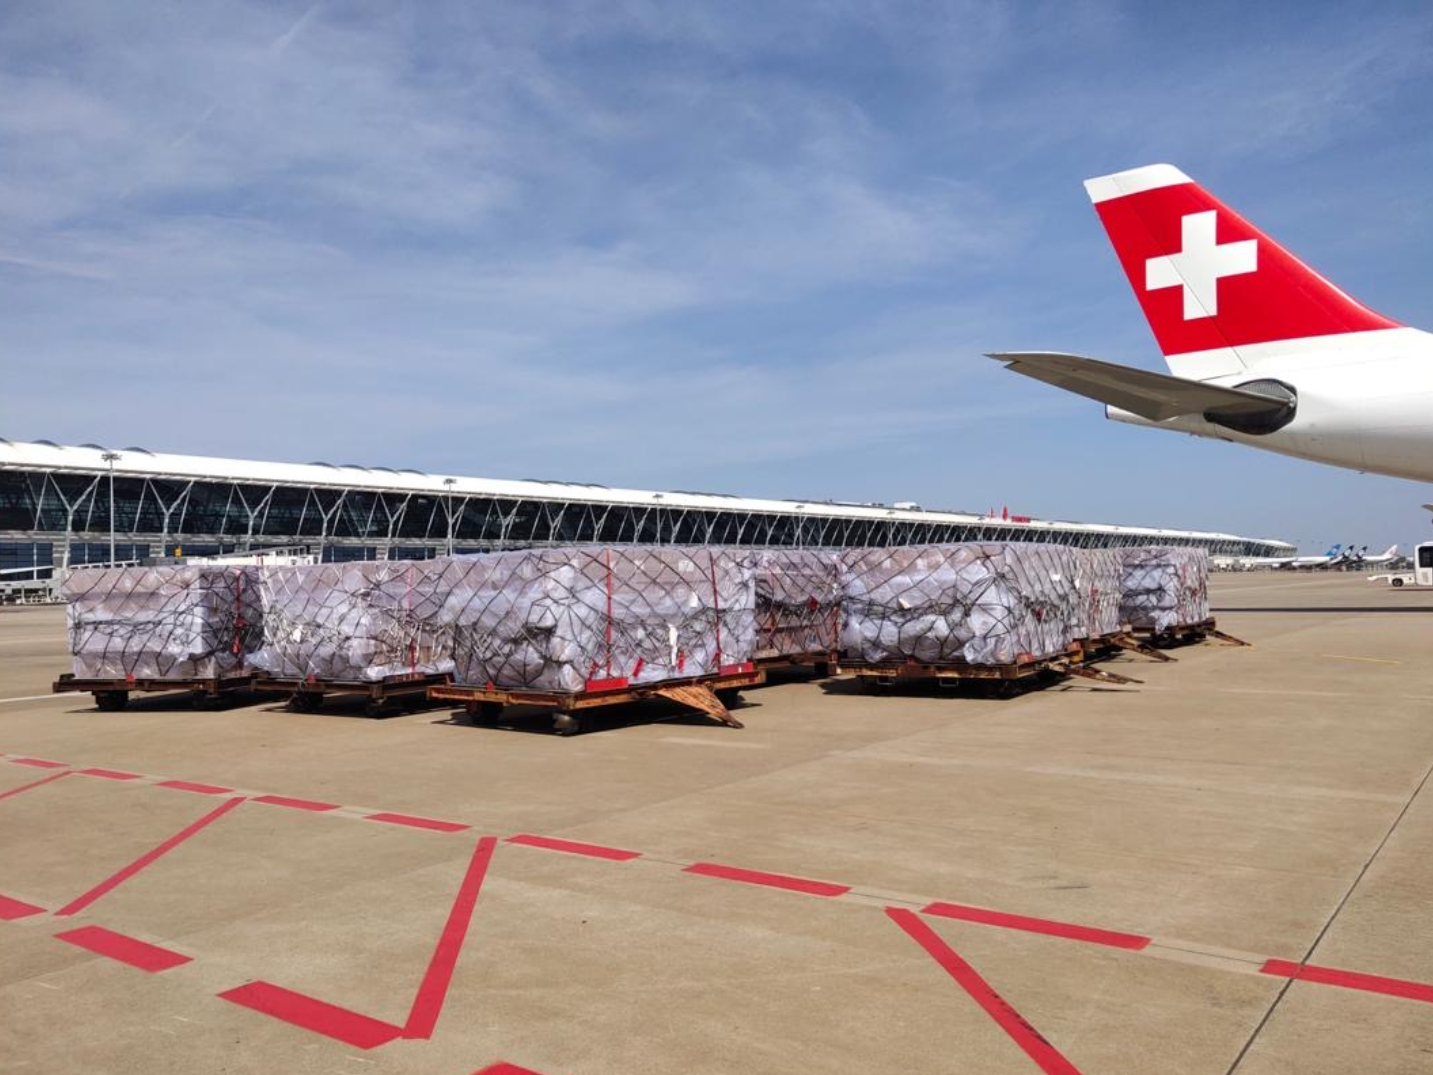 Over 35 mln medical protective items to be transported from China to Switzerland